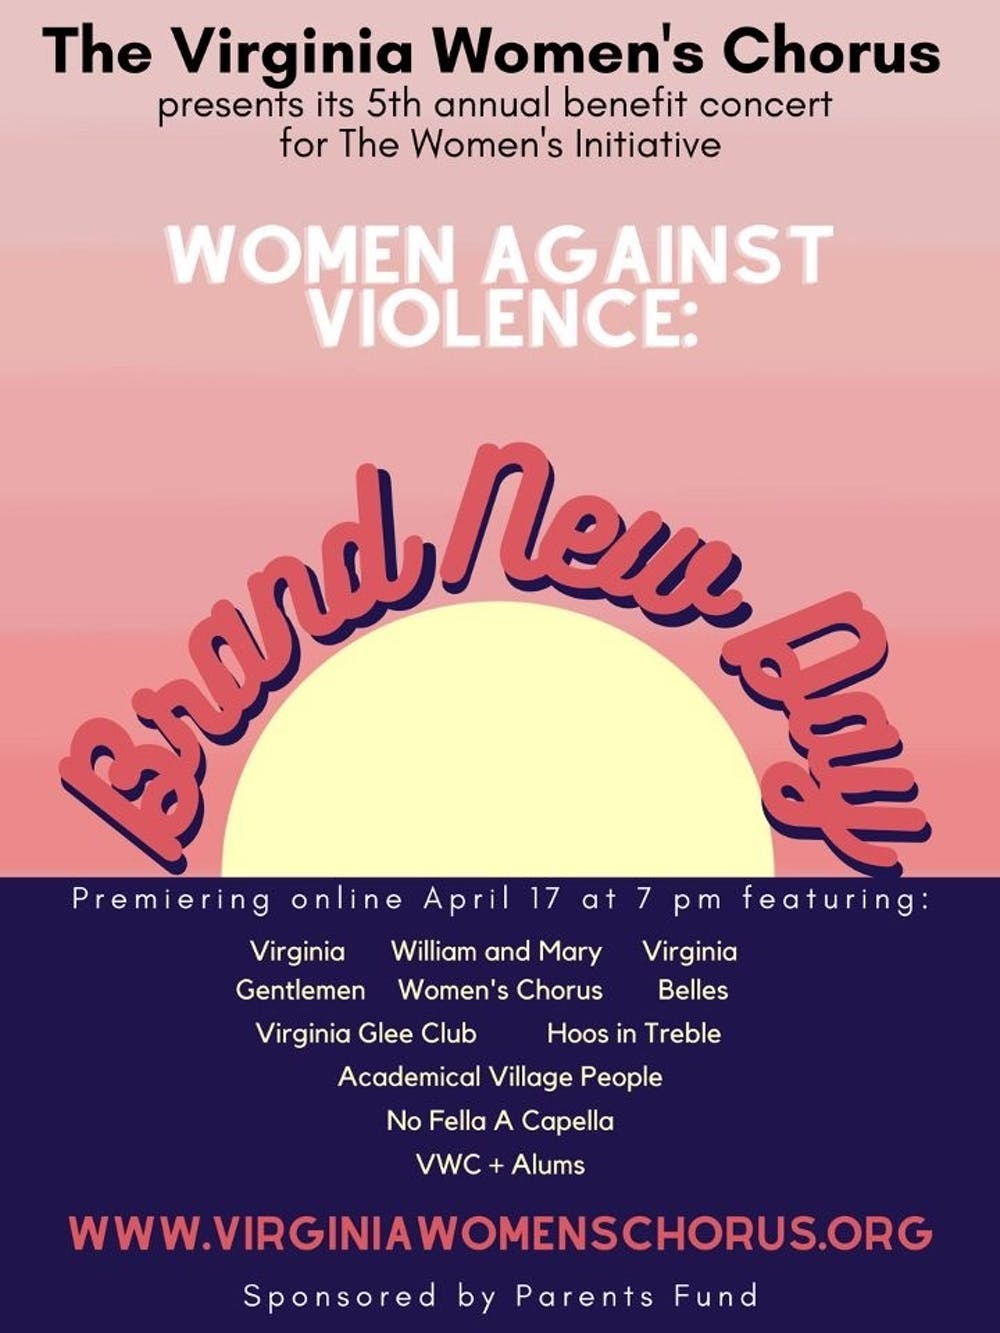 <p>Viewers of the Brand New Day Benefit Concert joined the Virginia Women's Chorus in raising awareness for sexual assault through uplifting music, donating to the Women's Initiative and more</p>